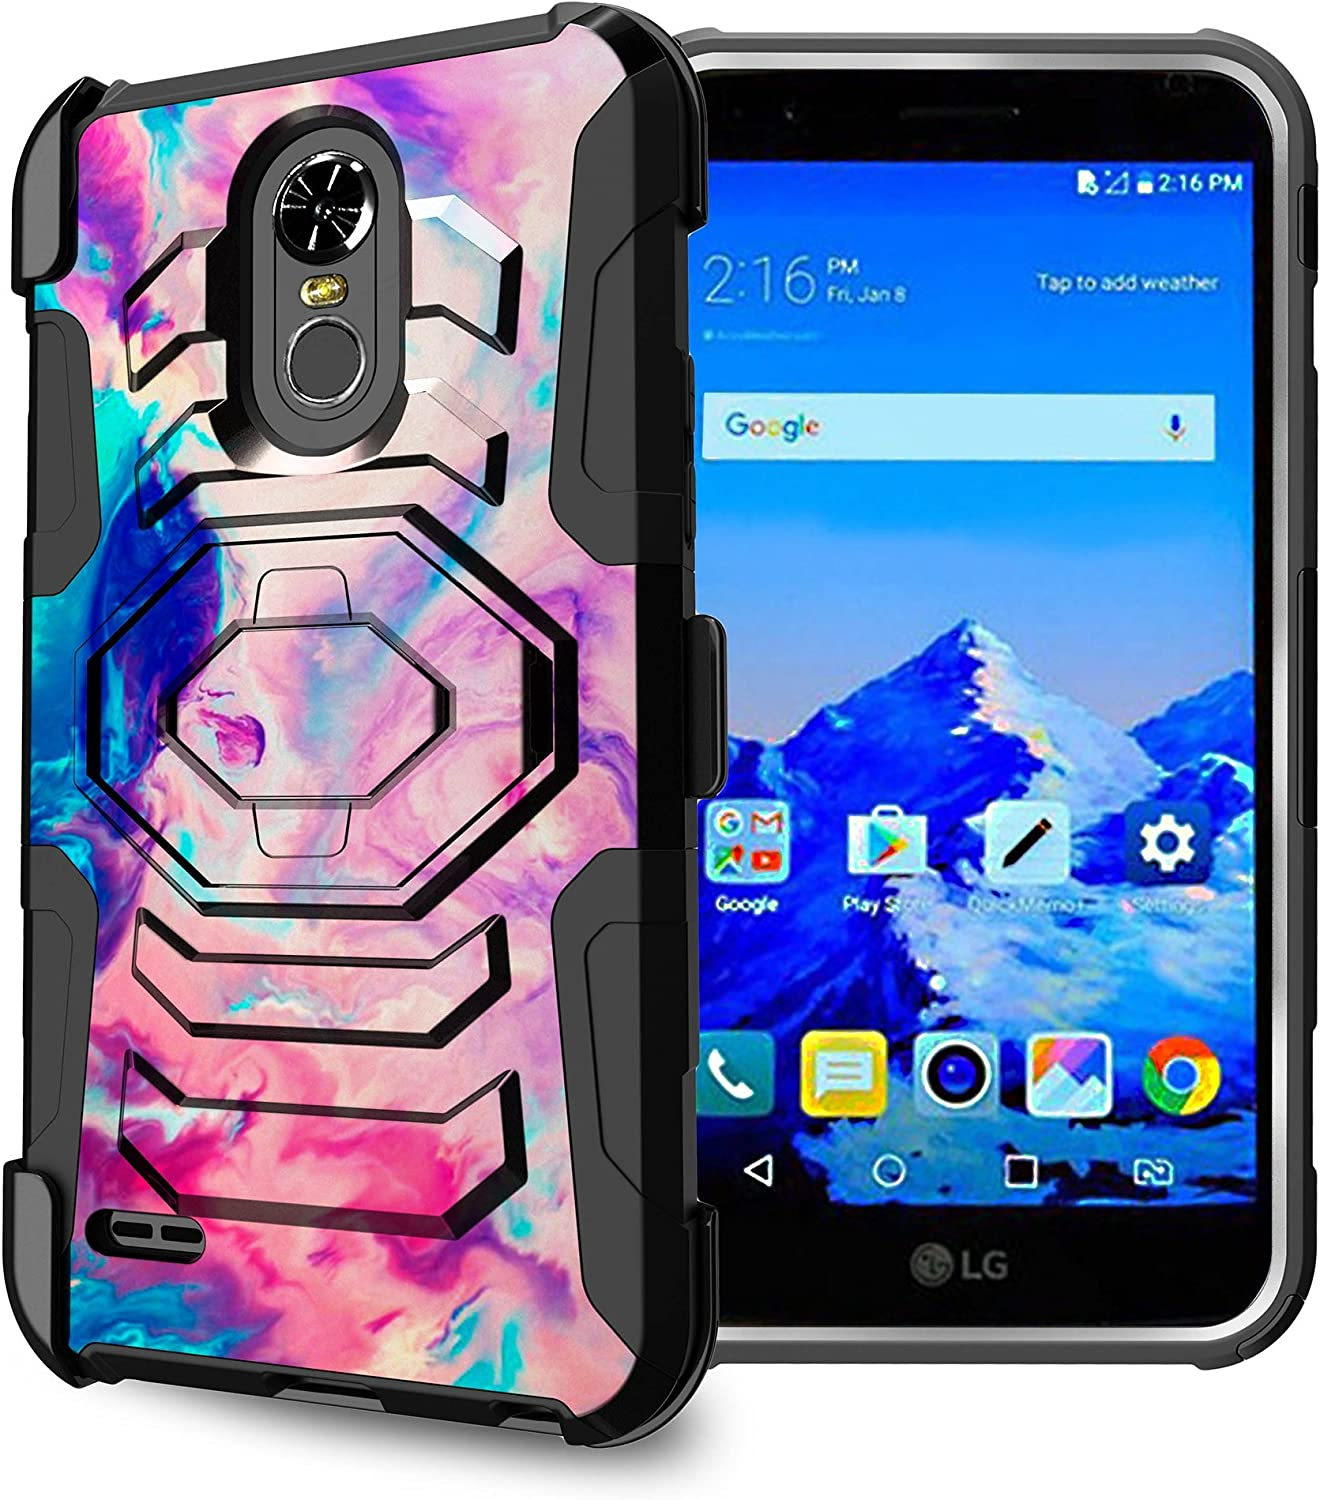 Untouchble Case for LG Stylo 3, LG Stylo 3 Plus Holster Case [Max Alpha Holster] Dual Layer Hybrid Belt Clip Kickstand Cover Protector Rugged - Colorful Marble